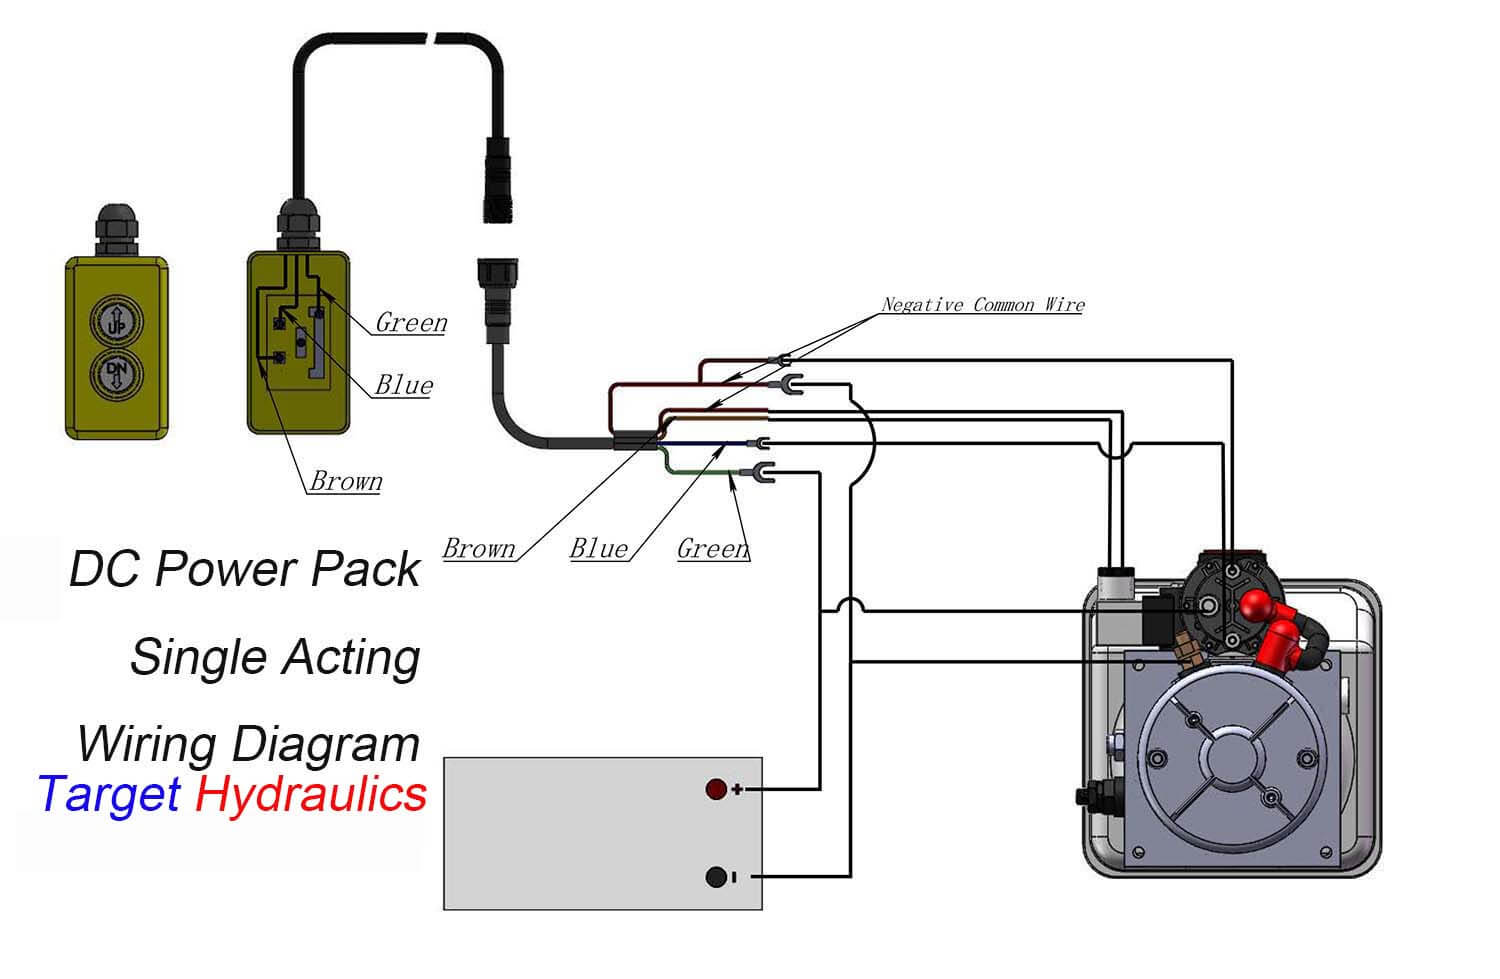 How to Wire_DC Motor Single Acting Power Pack how to wire hydraulic power pack,power unit diagram design 110 Power Cord Diagram at bakdesigns.co